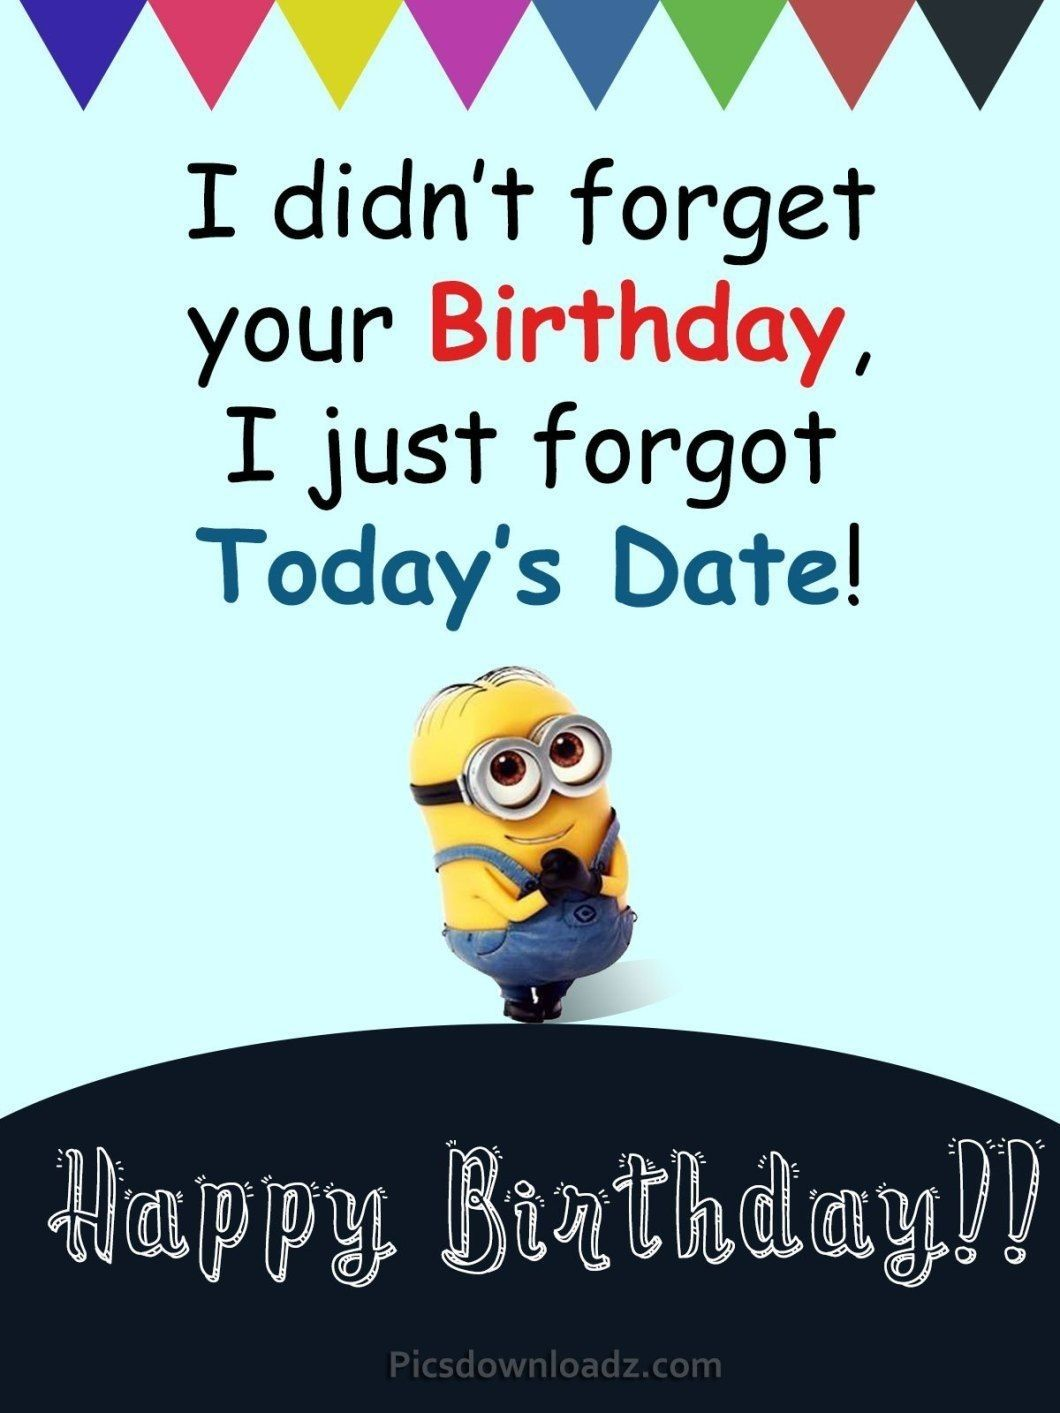 Hilarious Birthday Wishes Pertaining To Trending This Year Birthday Ideas Make Funny Happy Birthday Wishes Happy Birthday Quotes Funny Friend Birthday Quotes